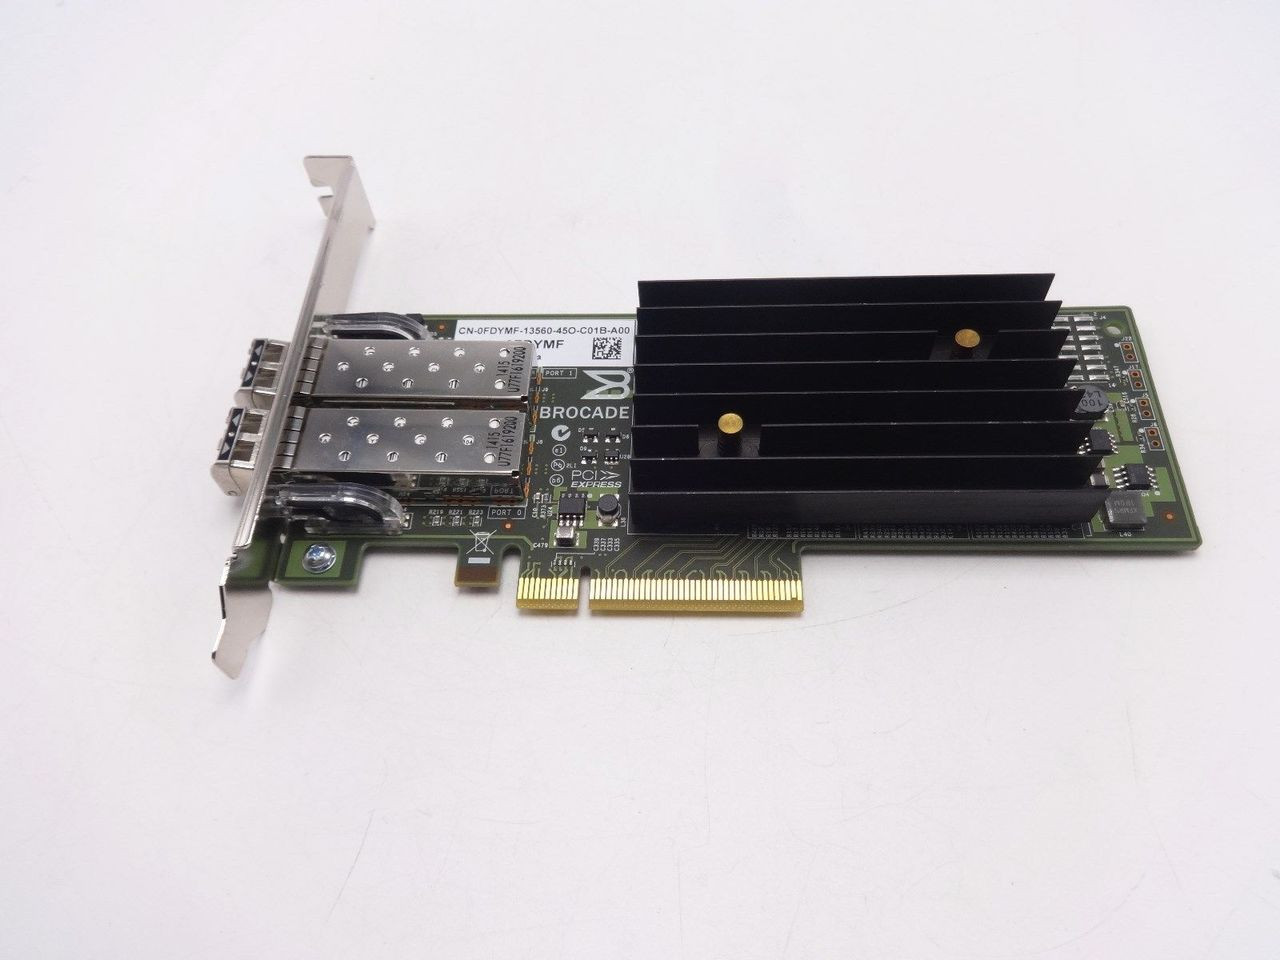 Dell FDYMF brocade 1020 10GB dual port converged network adapter